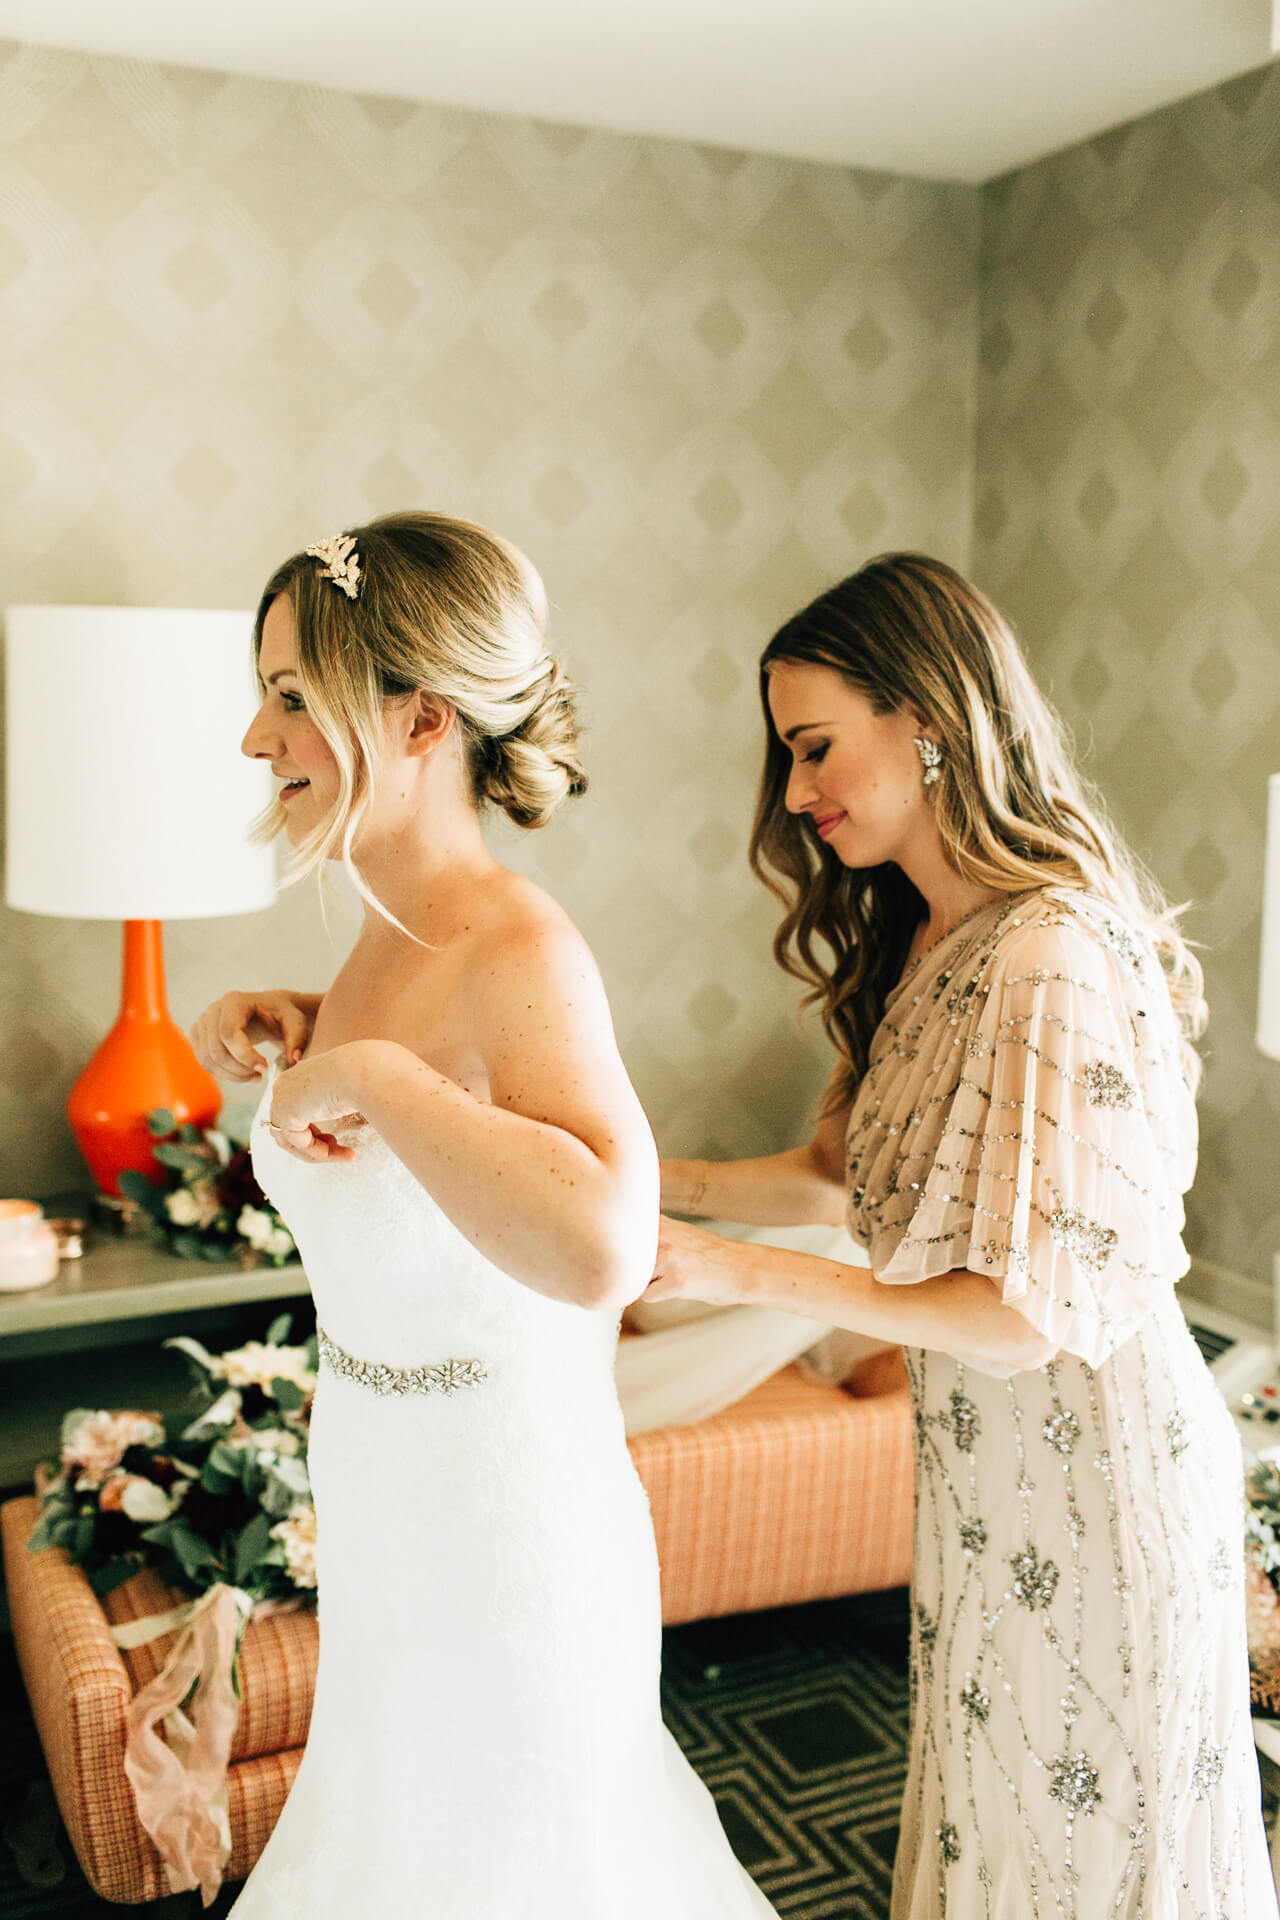 helping the bride get dressed on her wedding day